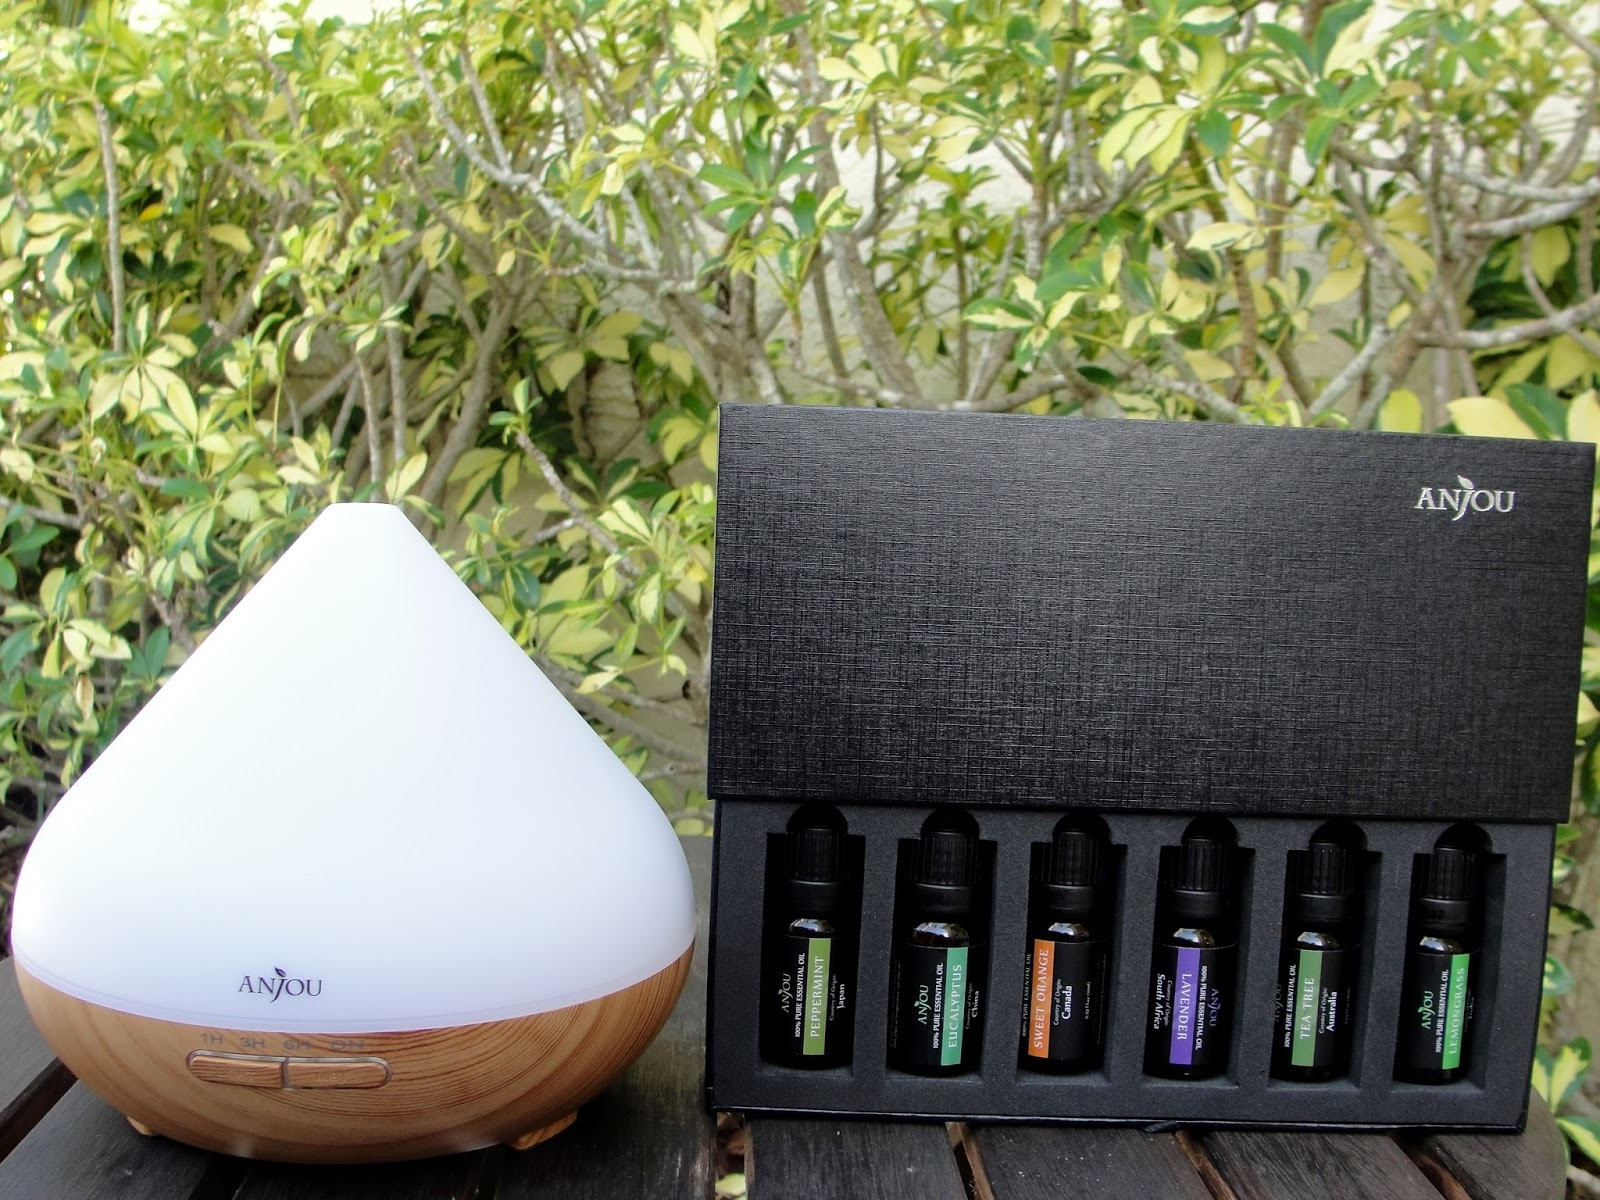 #819239 Anjou Aromatherapy Diffuser & Essential Oils Set  Most Effective 1175 Aromatherapy Diffuser Set pictures with 1600x1200 px on helpvideos.info - Air Conditioners, Air Coolers and more